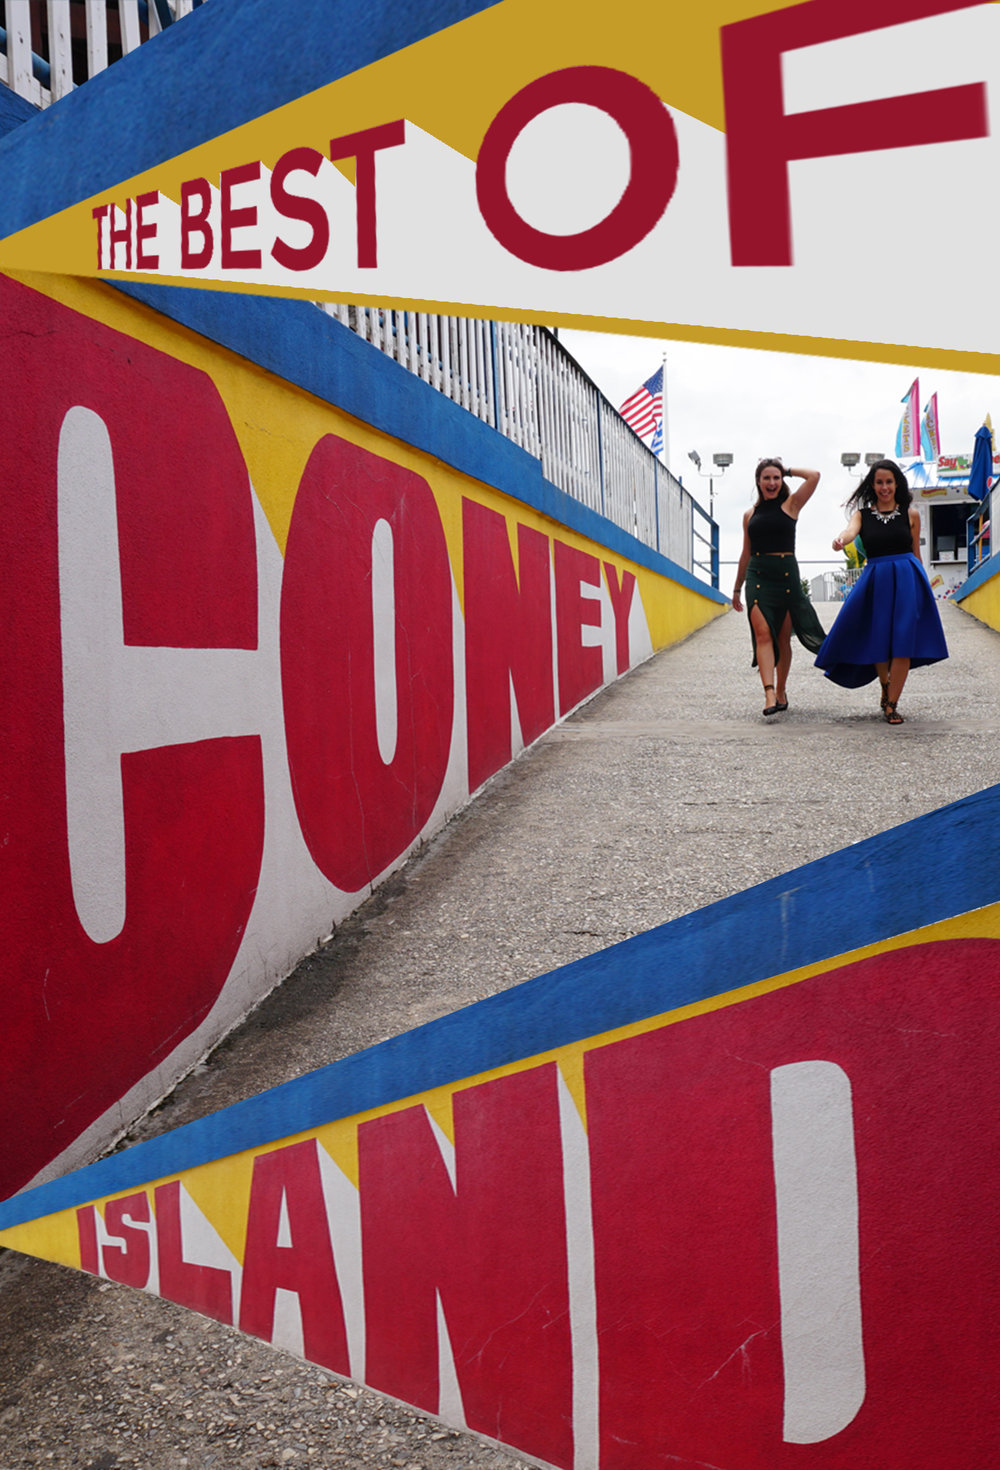 Best Things to do in Coney Island